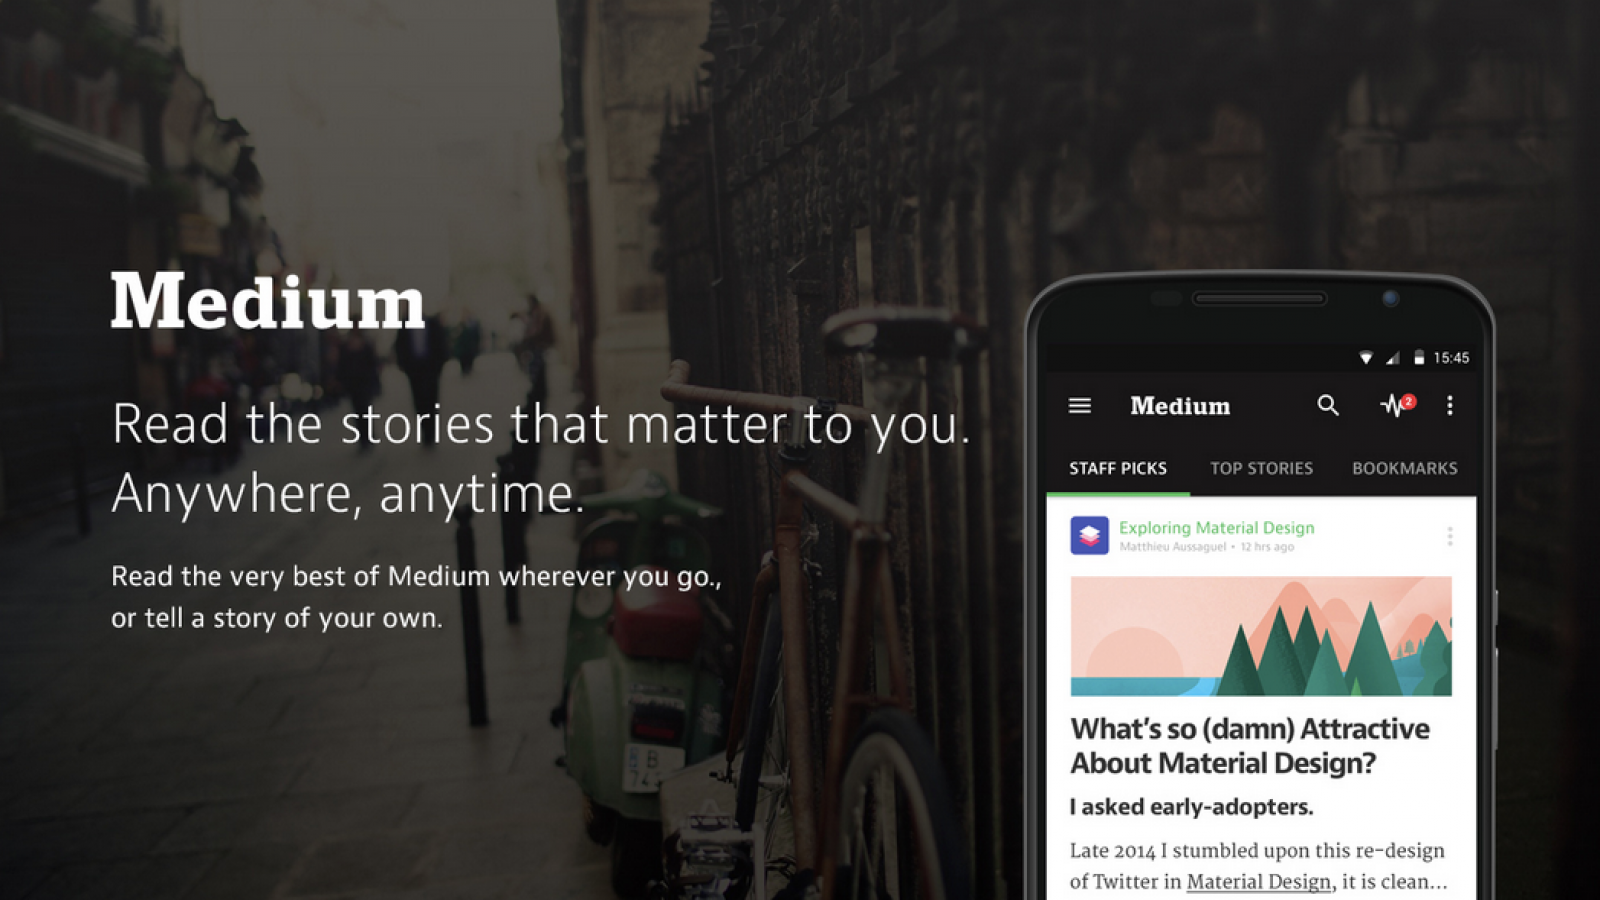 App Design: Medium for Android